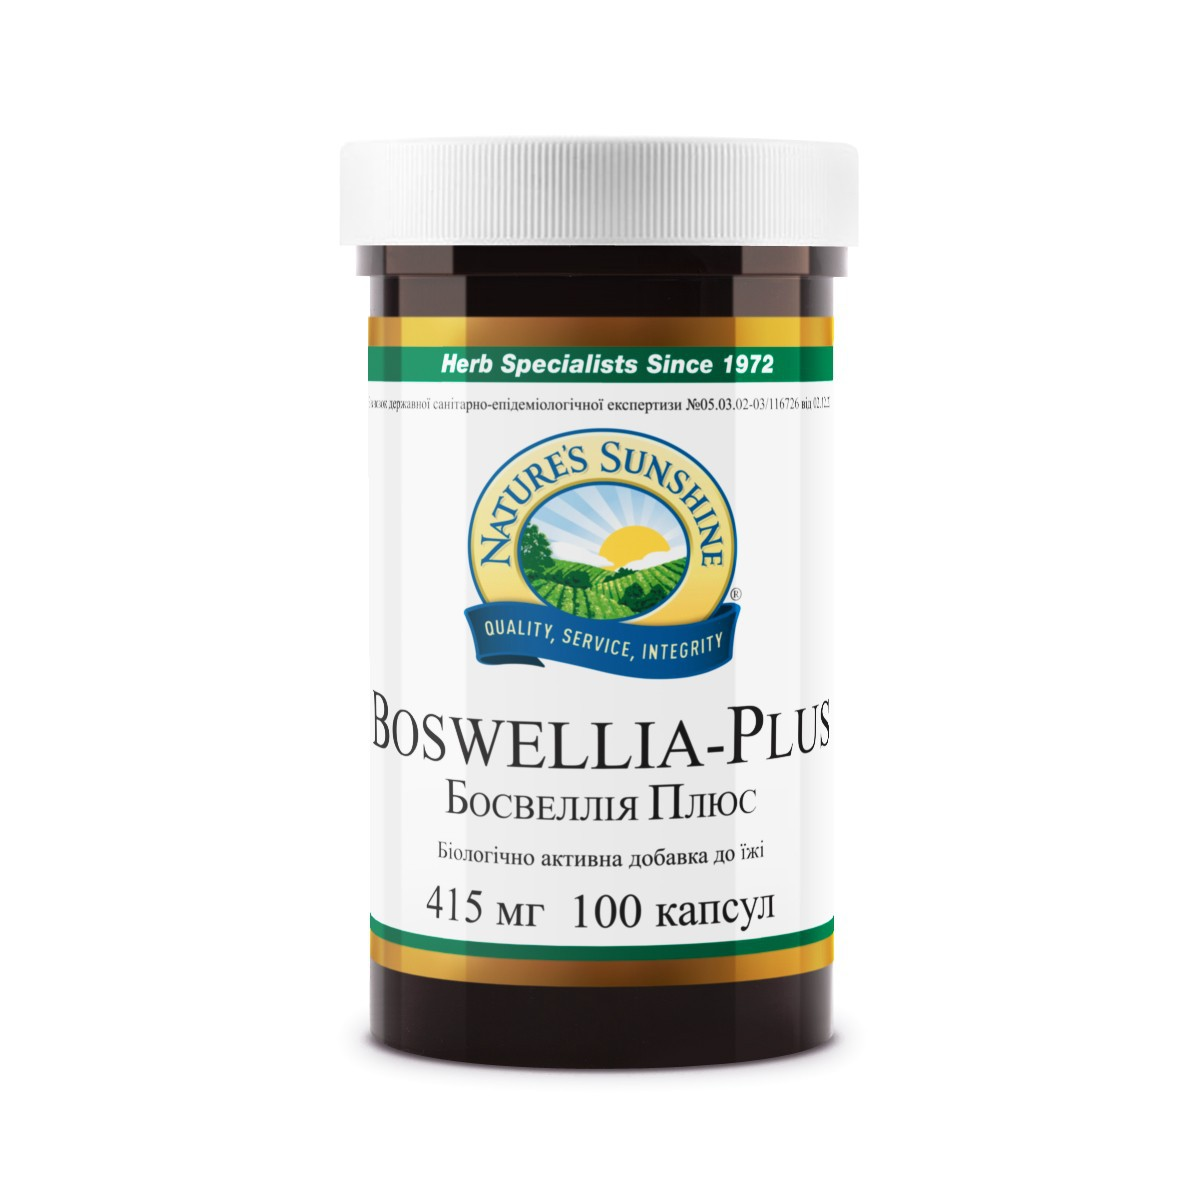 Boswellia Plus